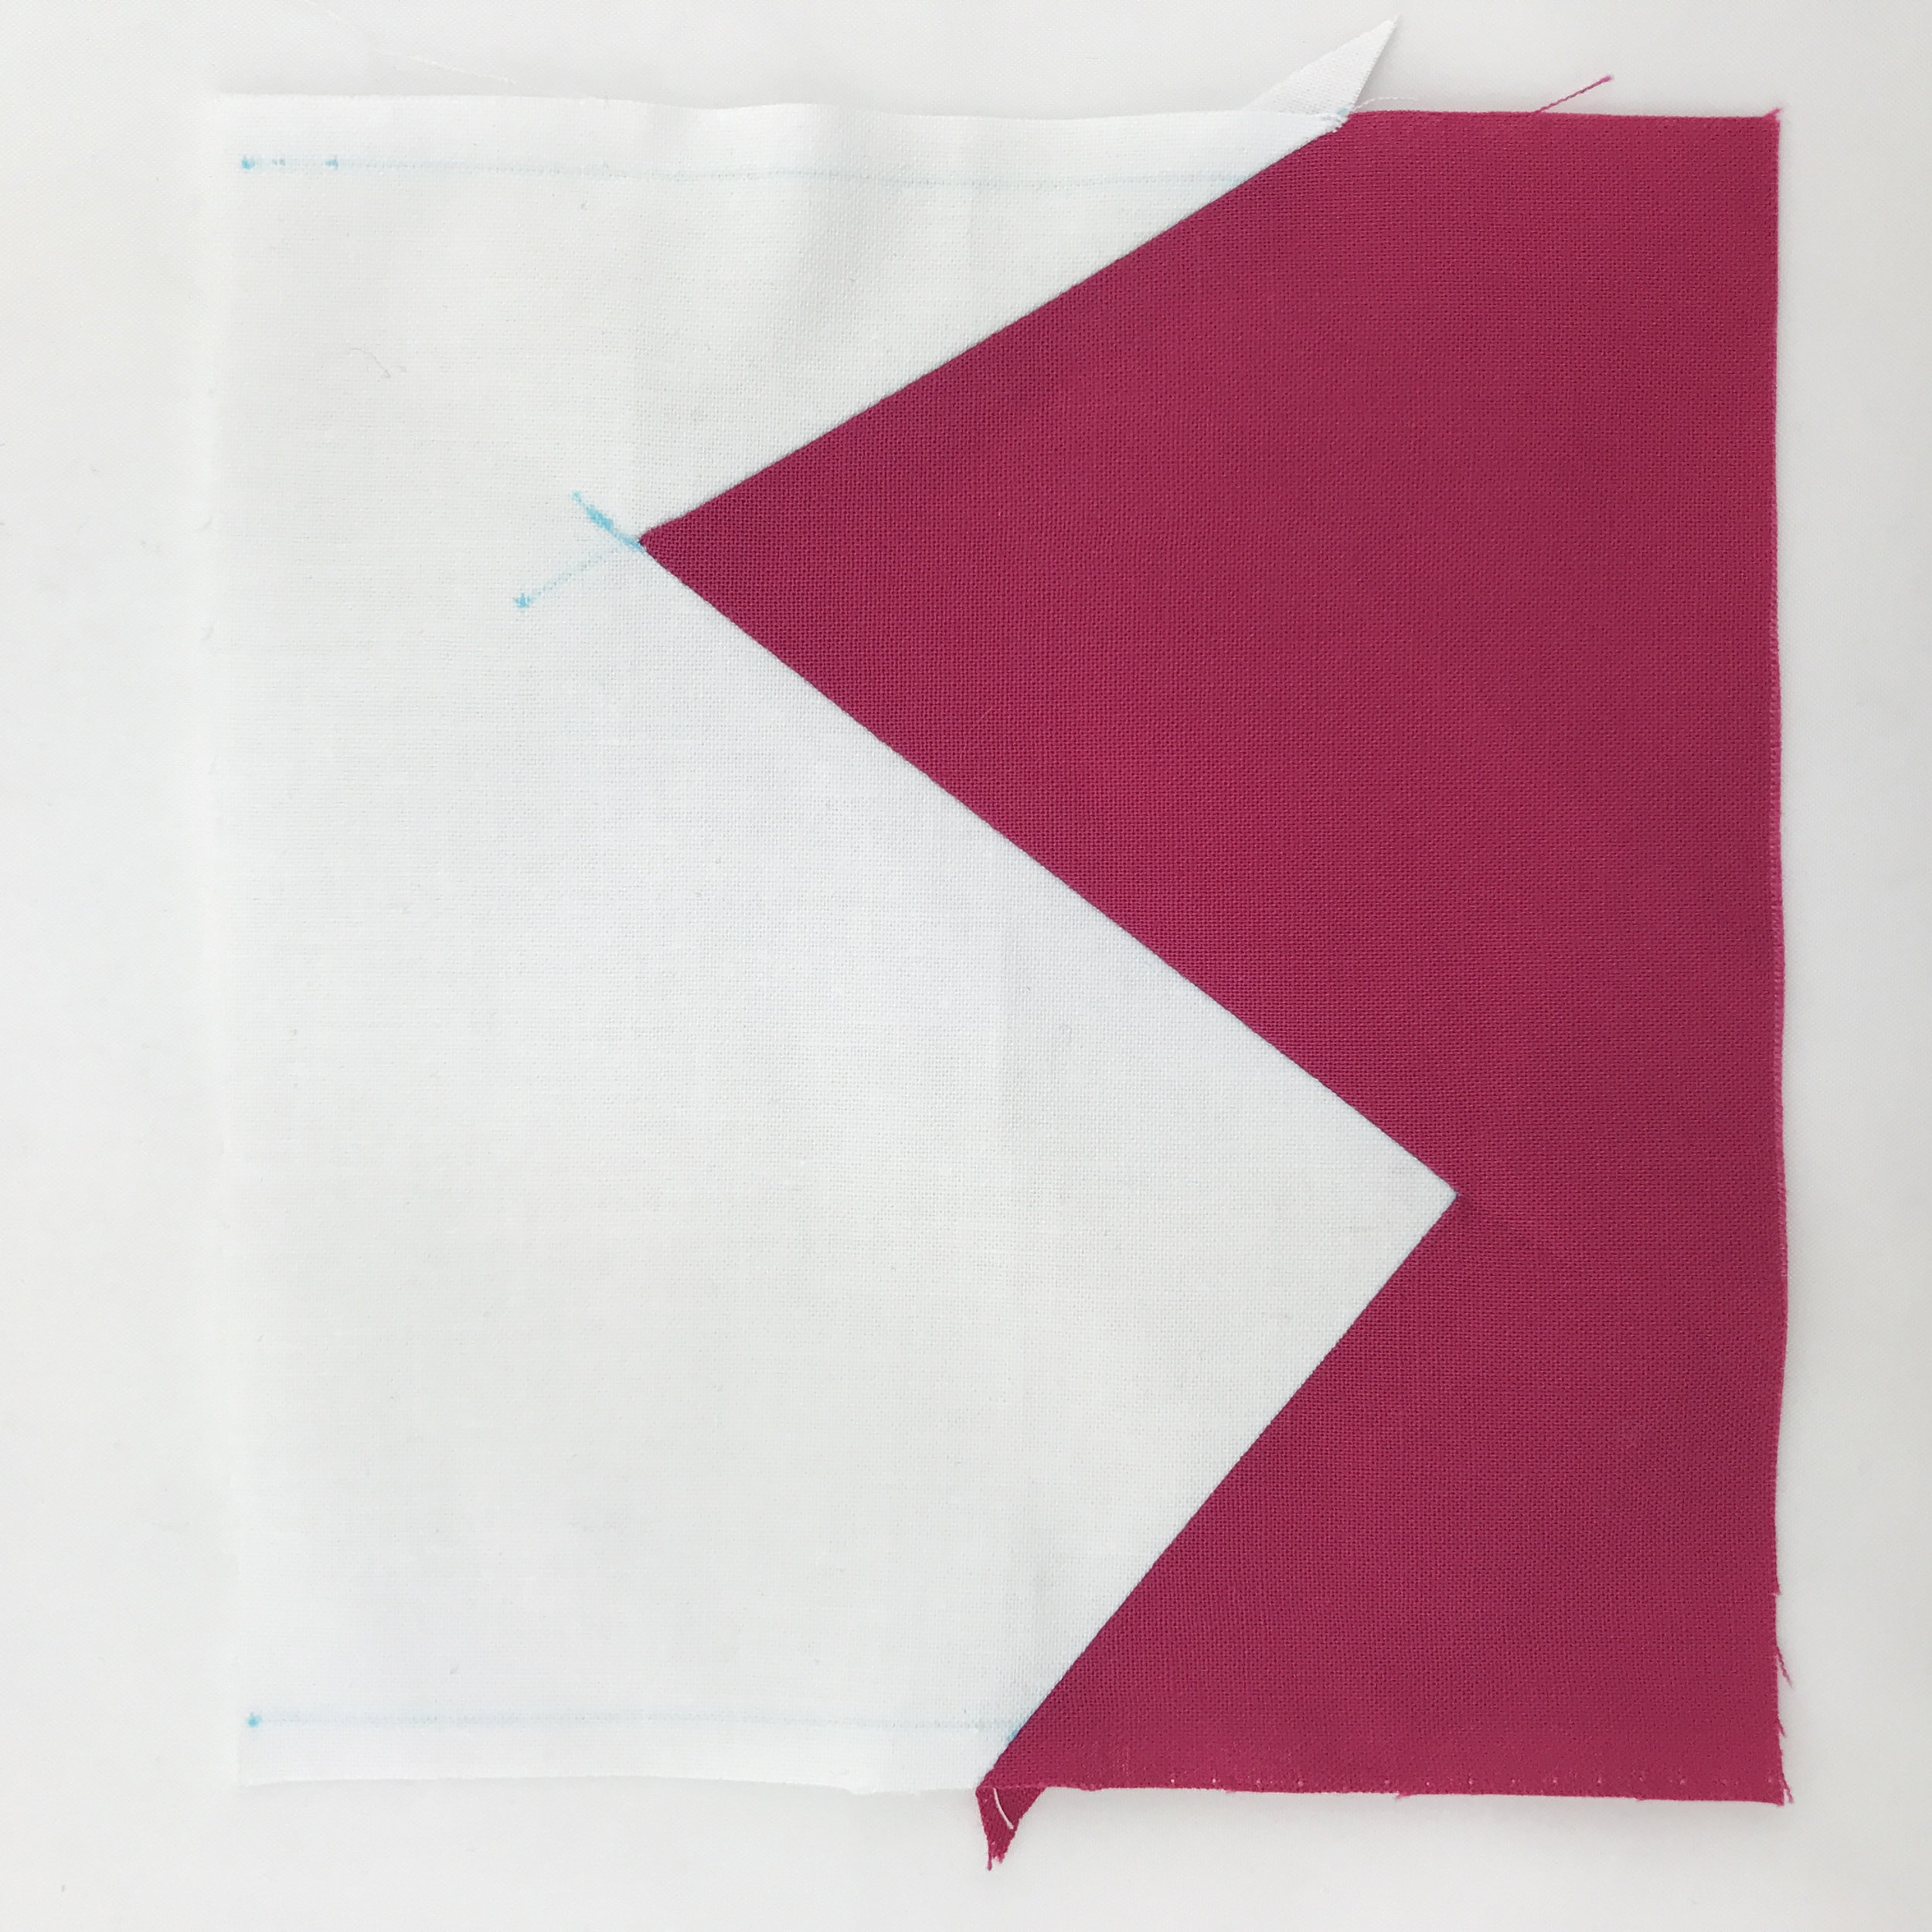 A completed Z seam